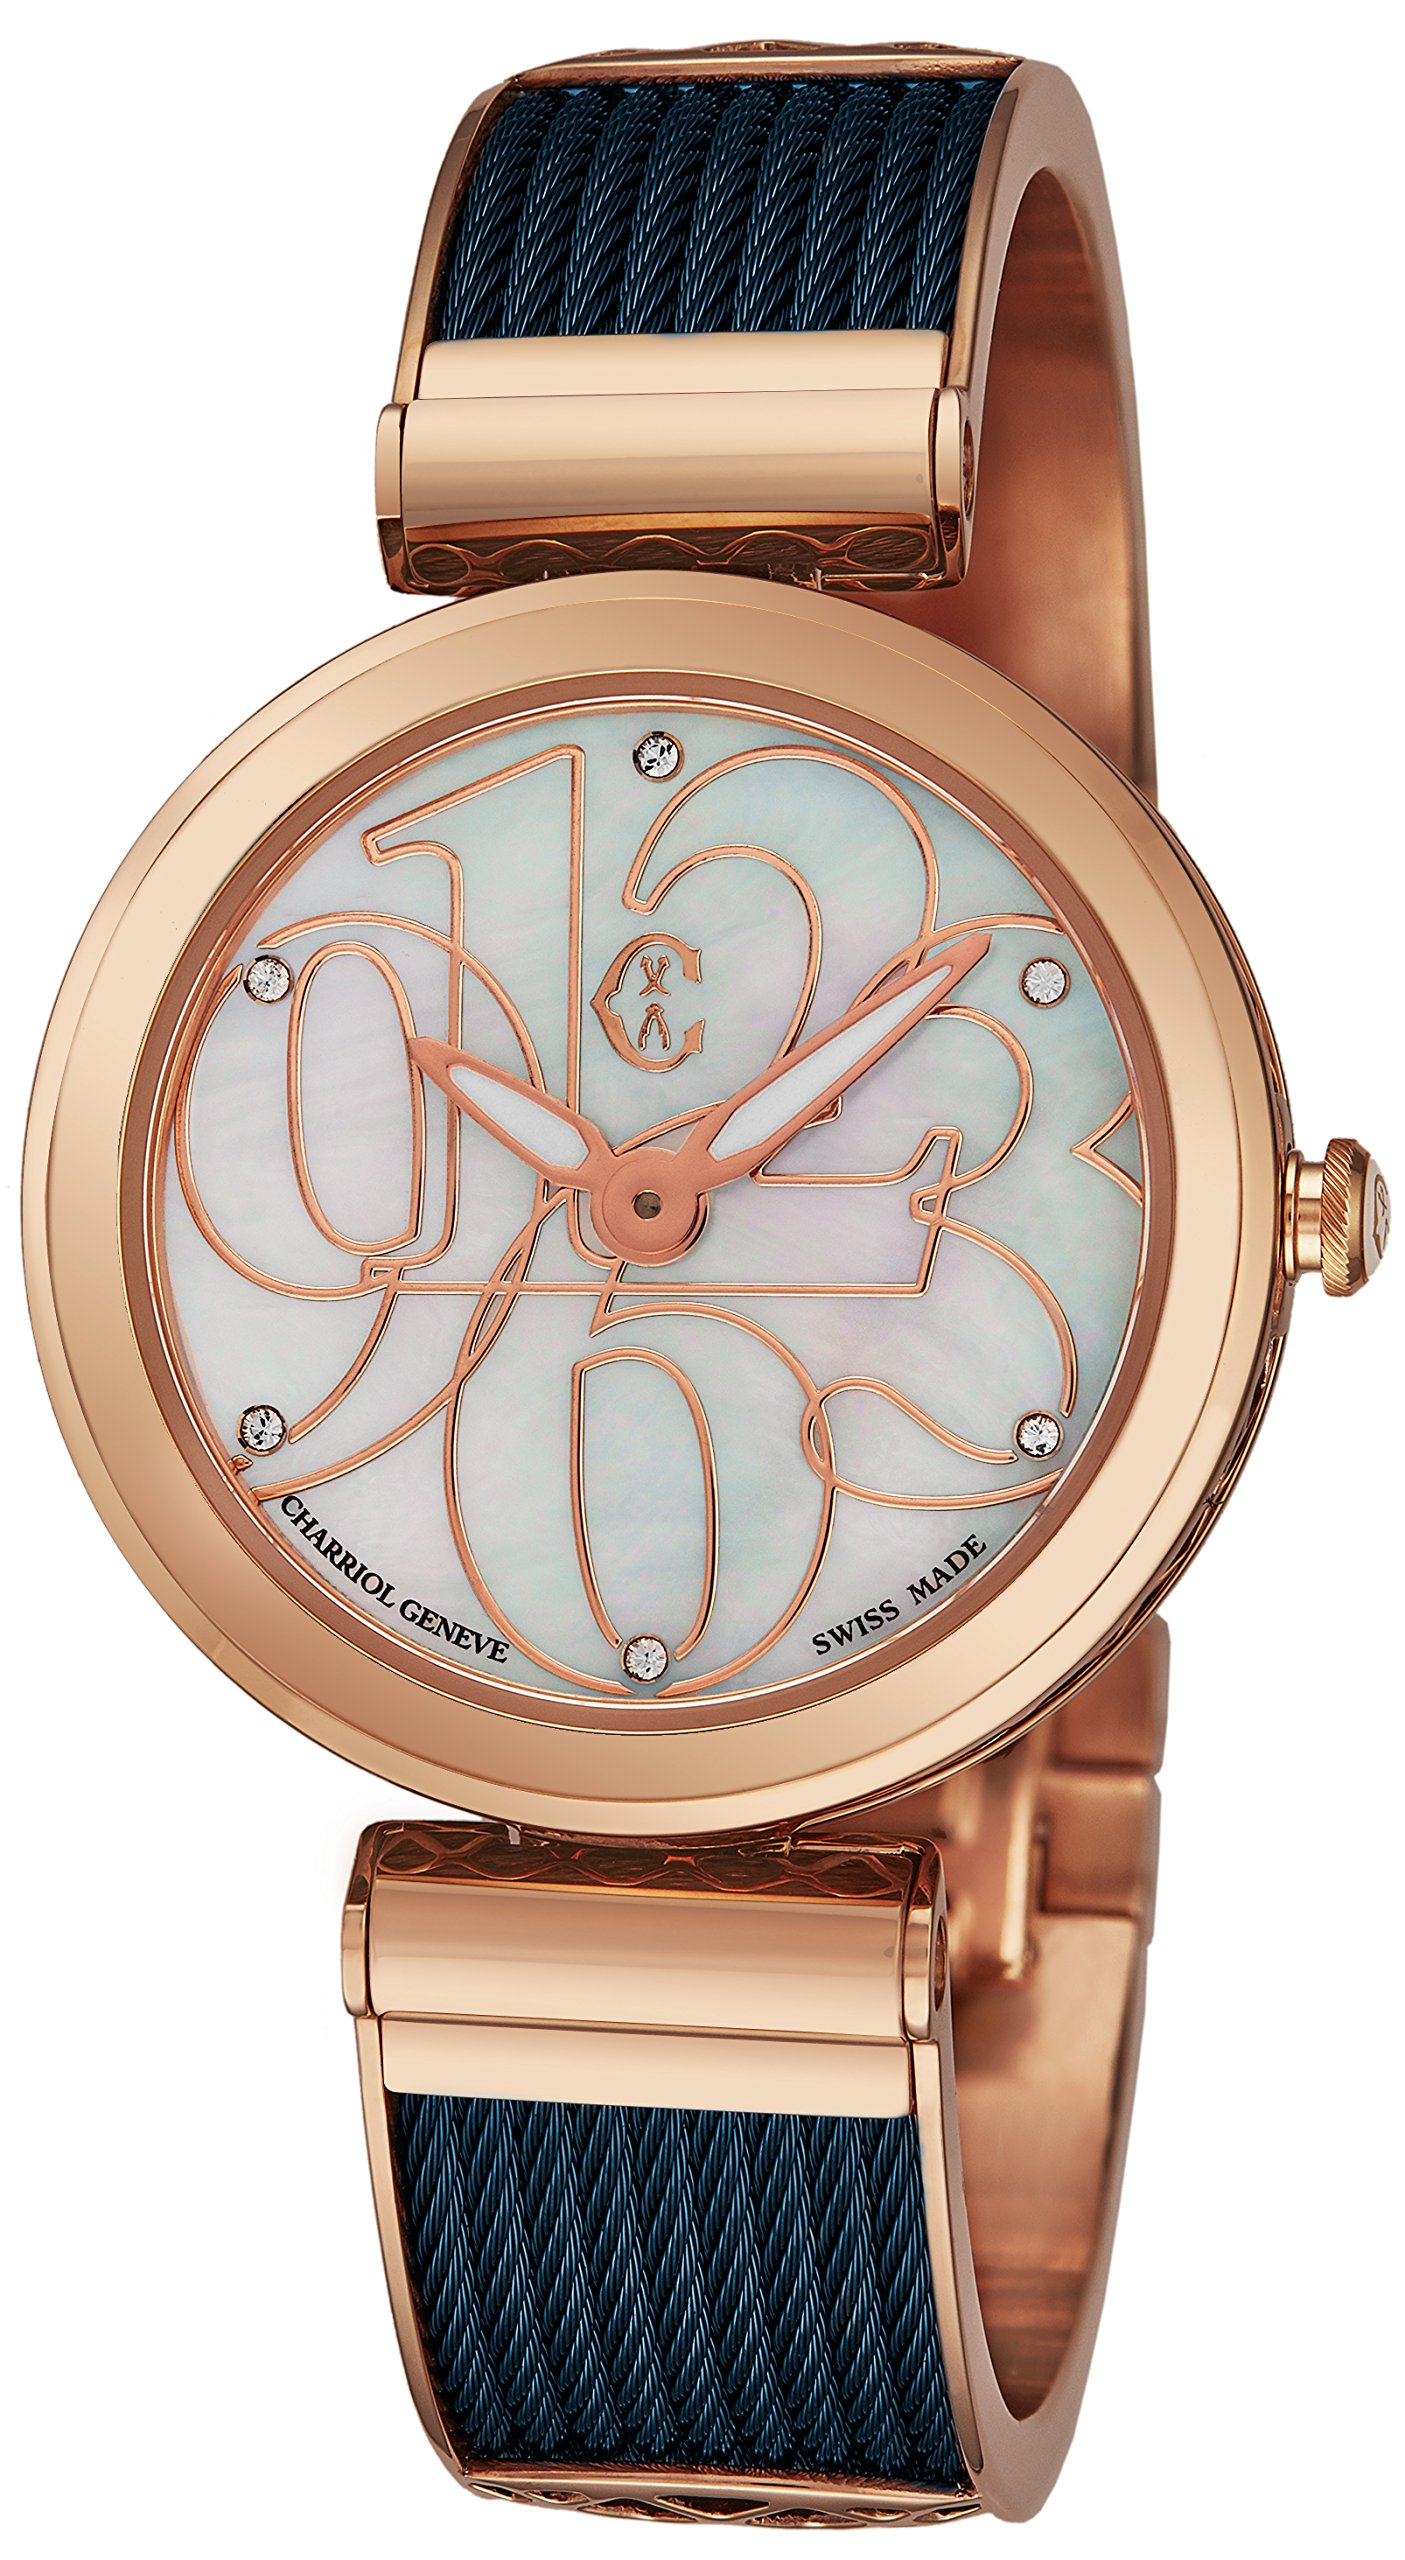 9a499996c1f Charriol  Forever Mixed Numerals  Womens Watches Rose Gold Stainless Steel  - 32mm Analog Mother of Pearl Face Ladies Dress Watch - Blue Twisted Cable  ...